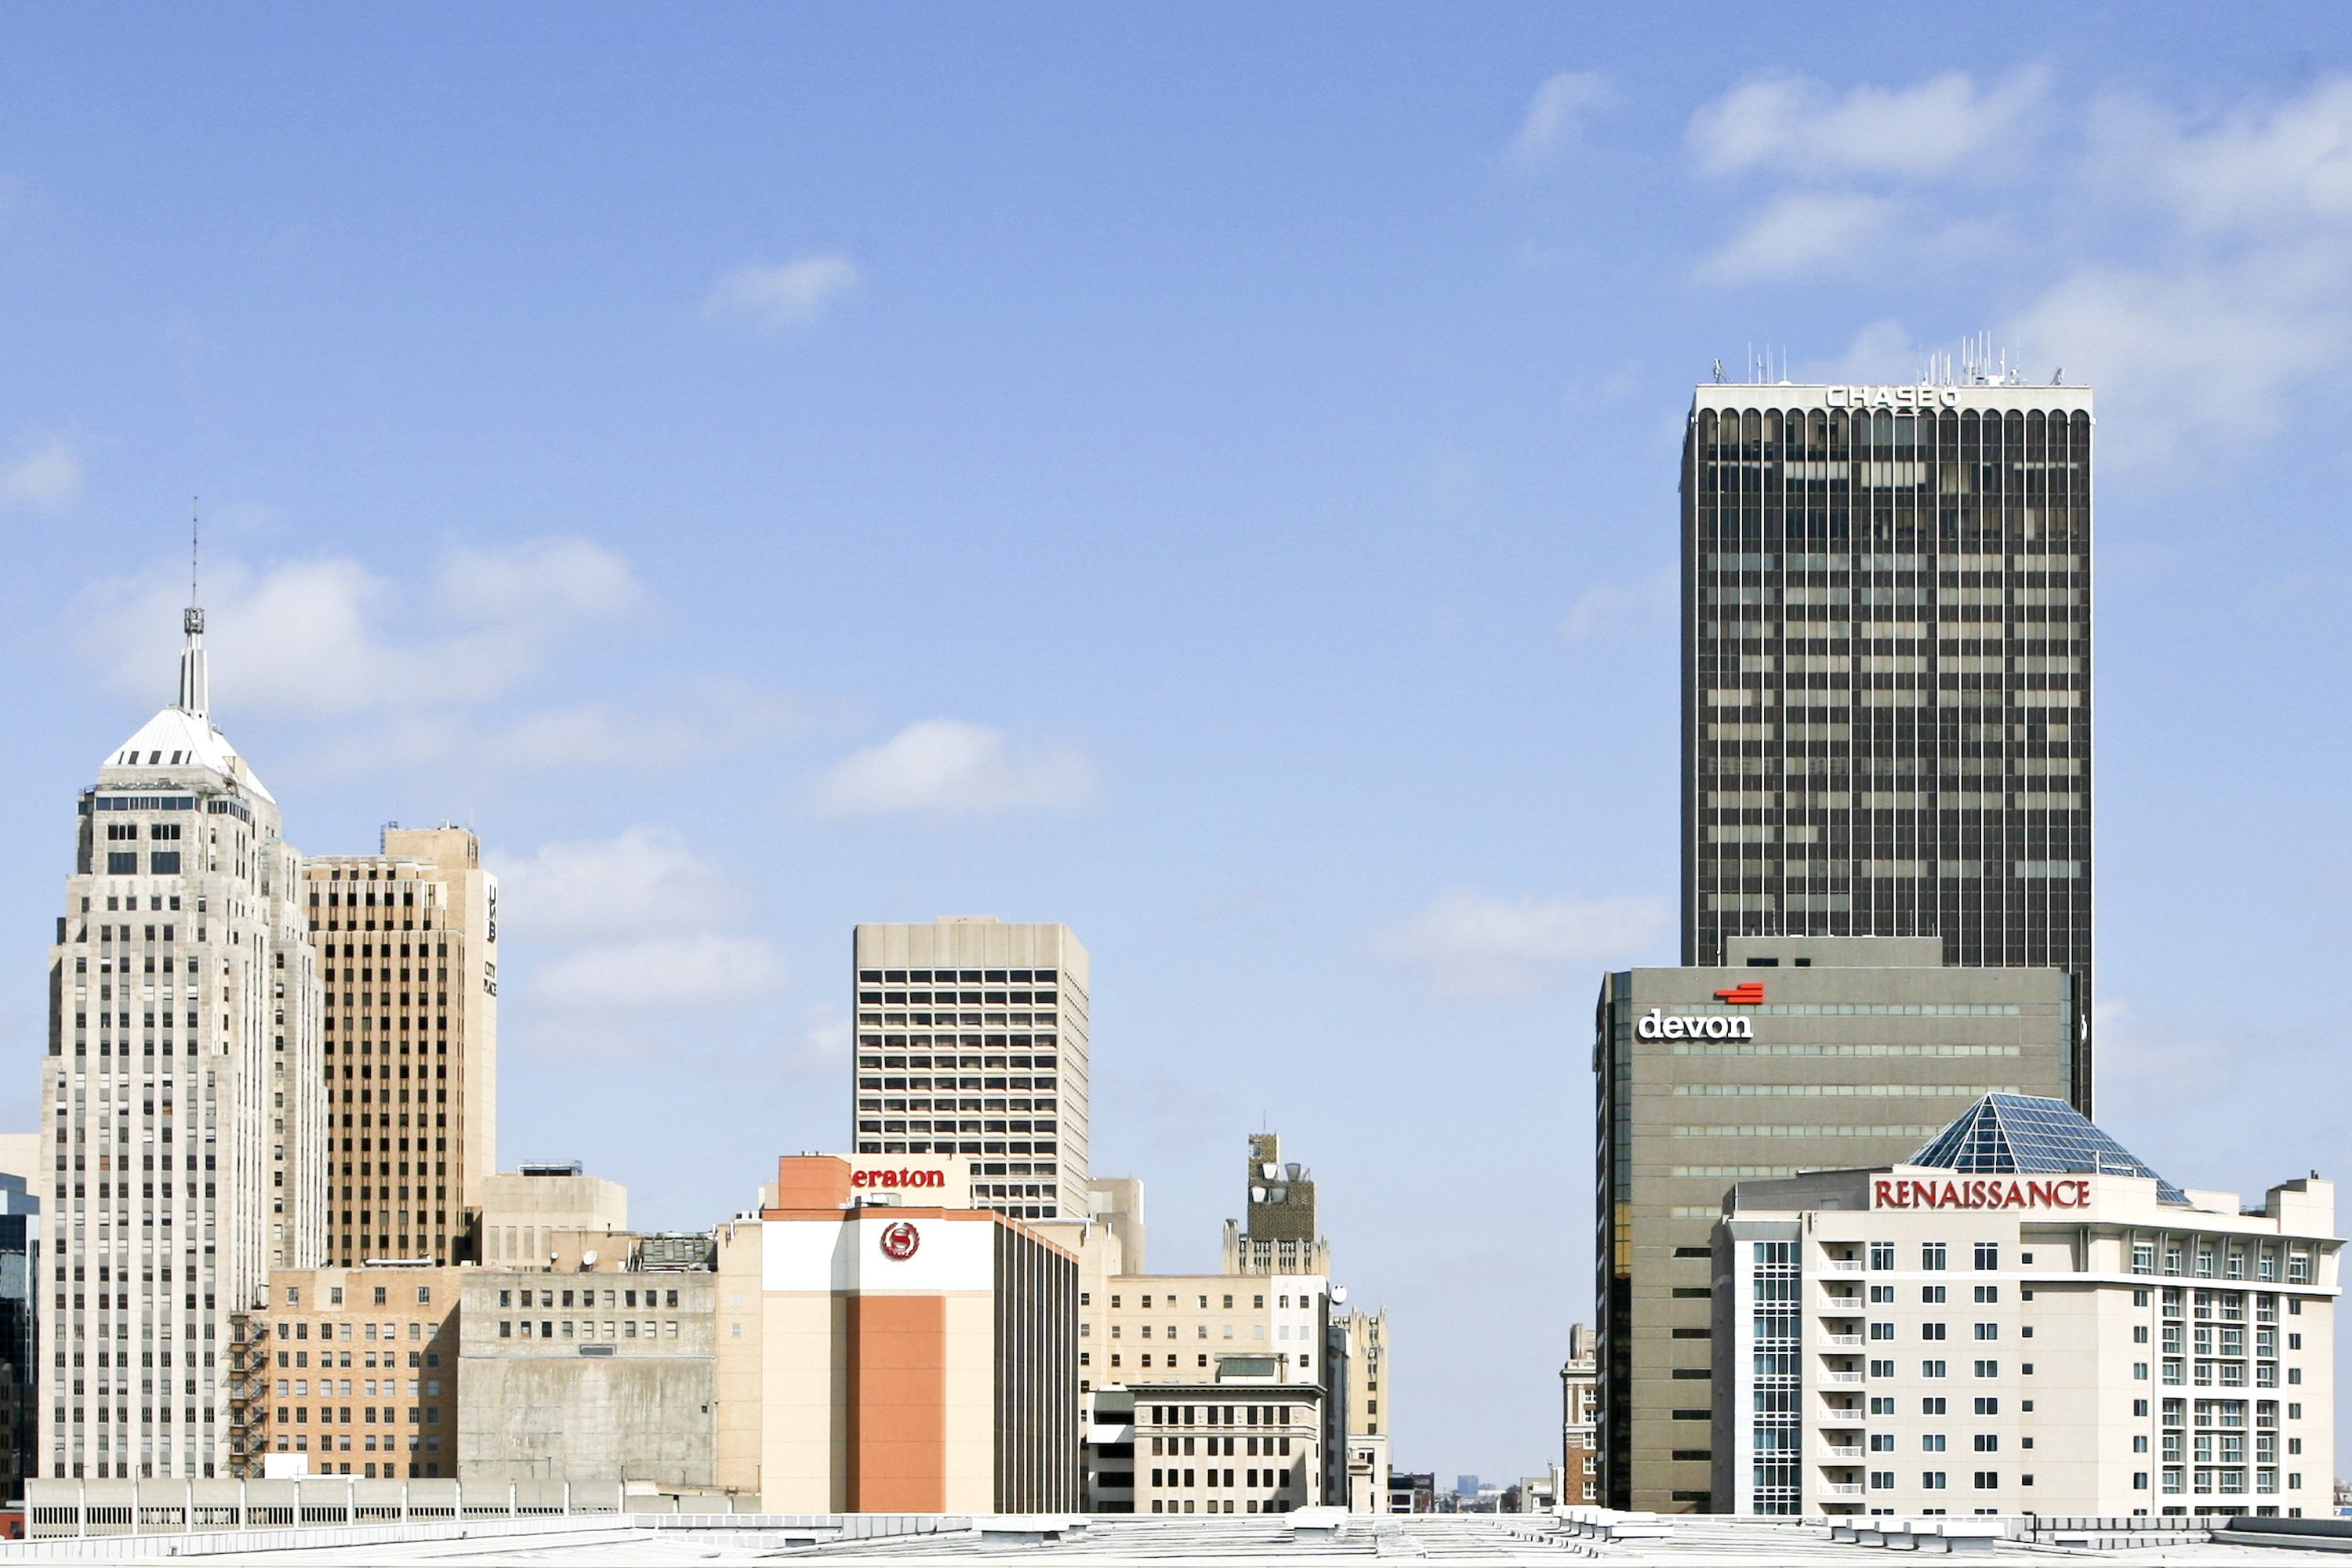 Hotels and commercial buildings stand in Oklahoma City, Okla